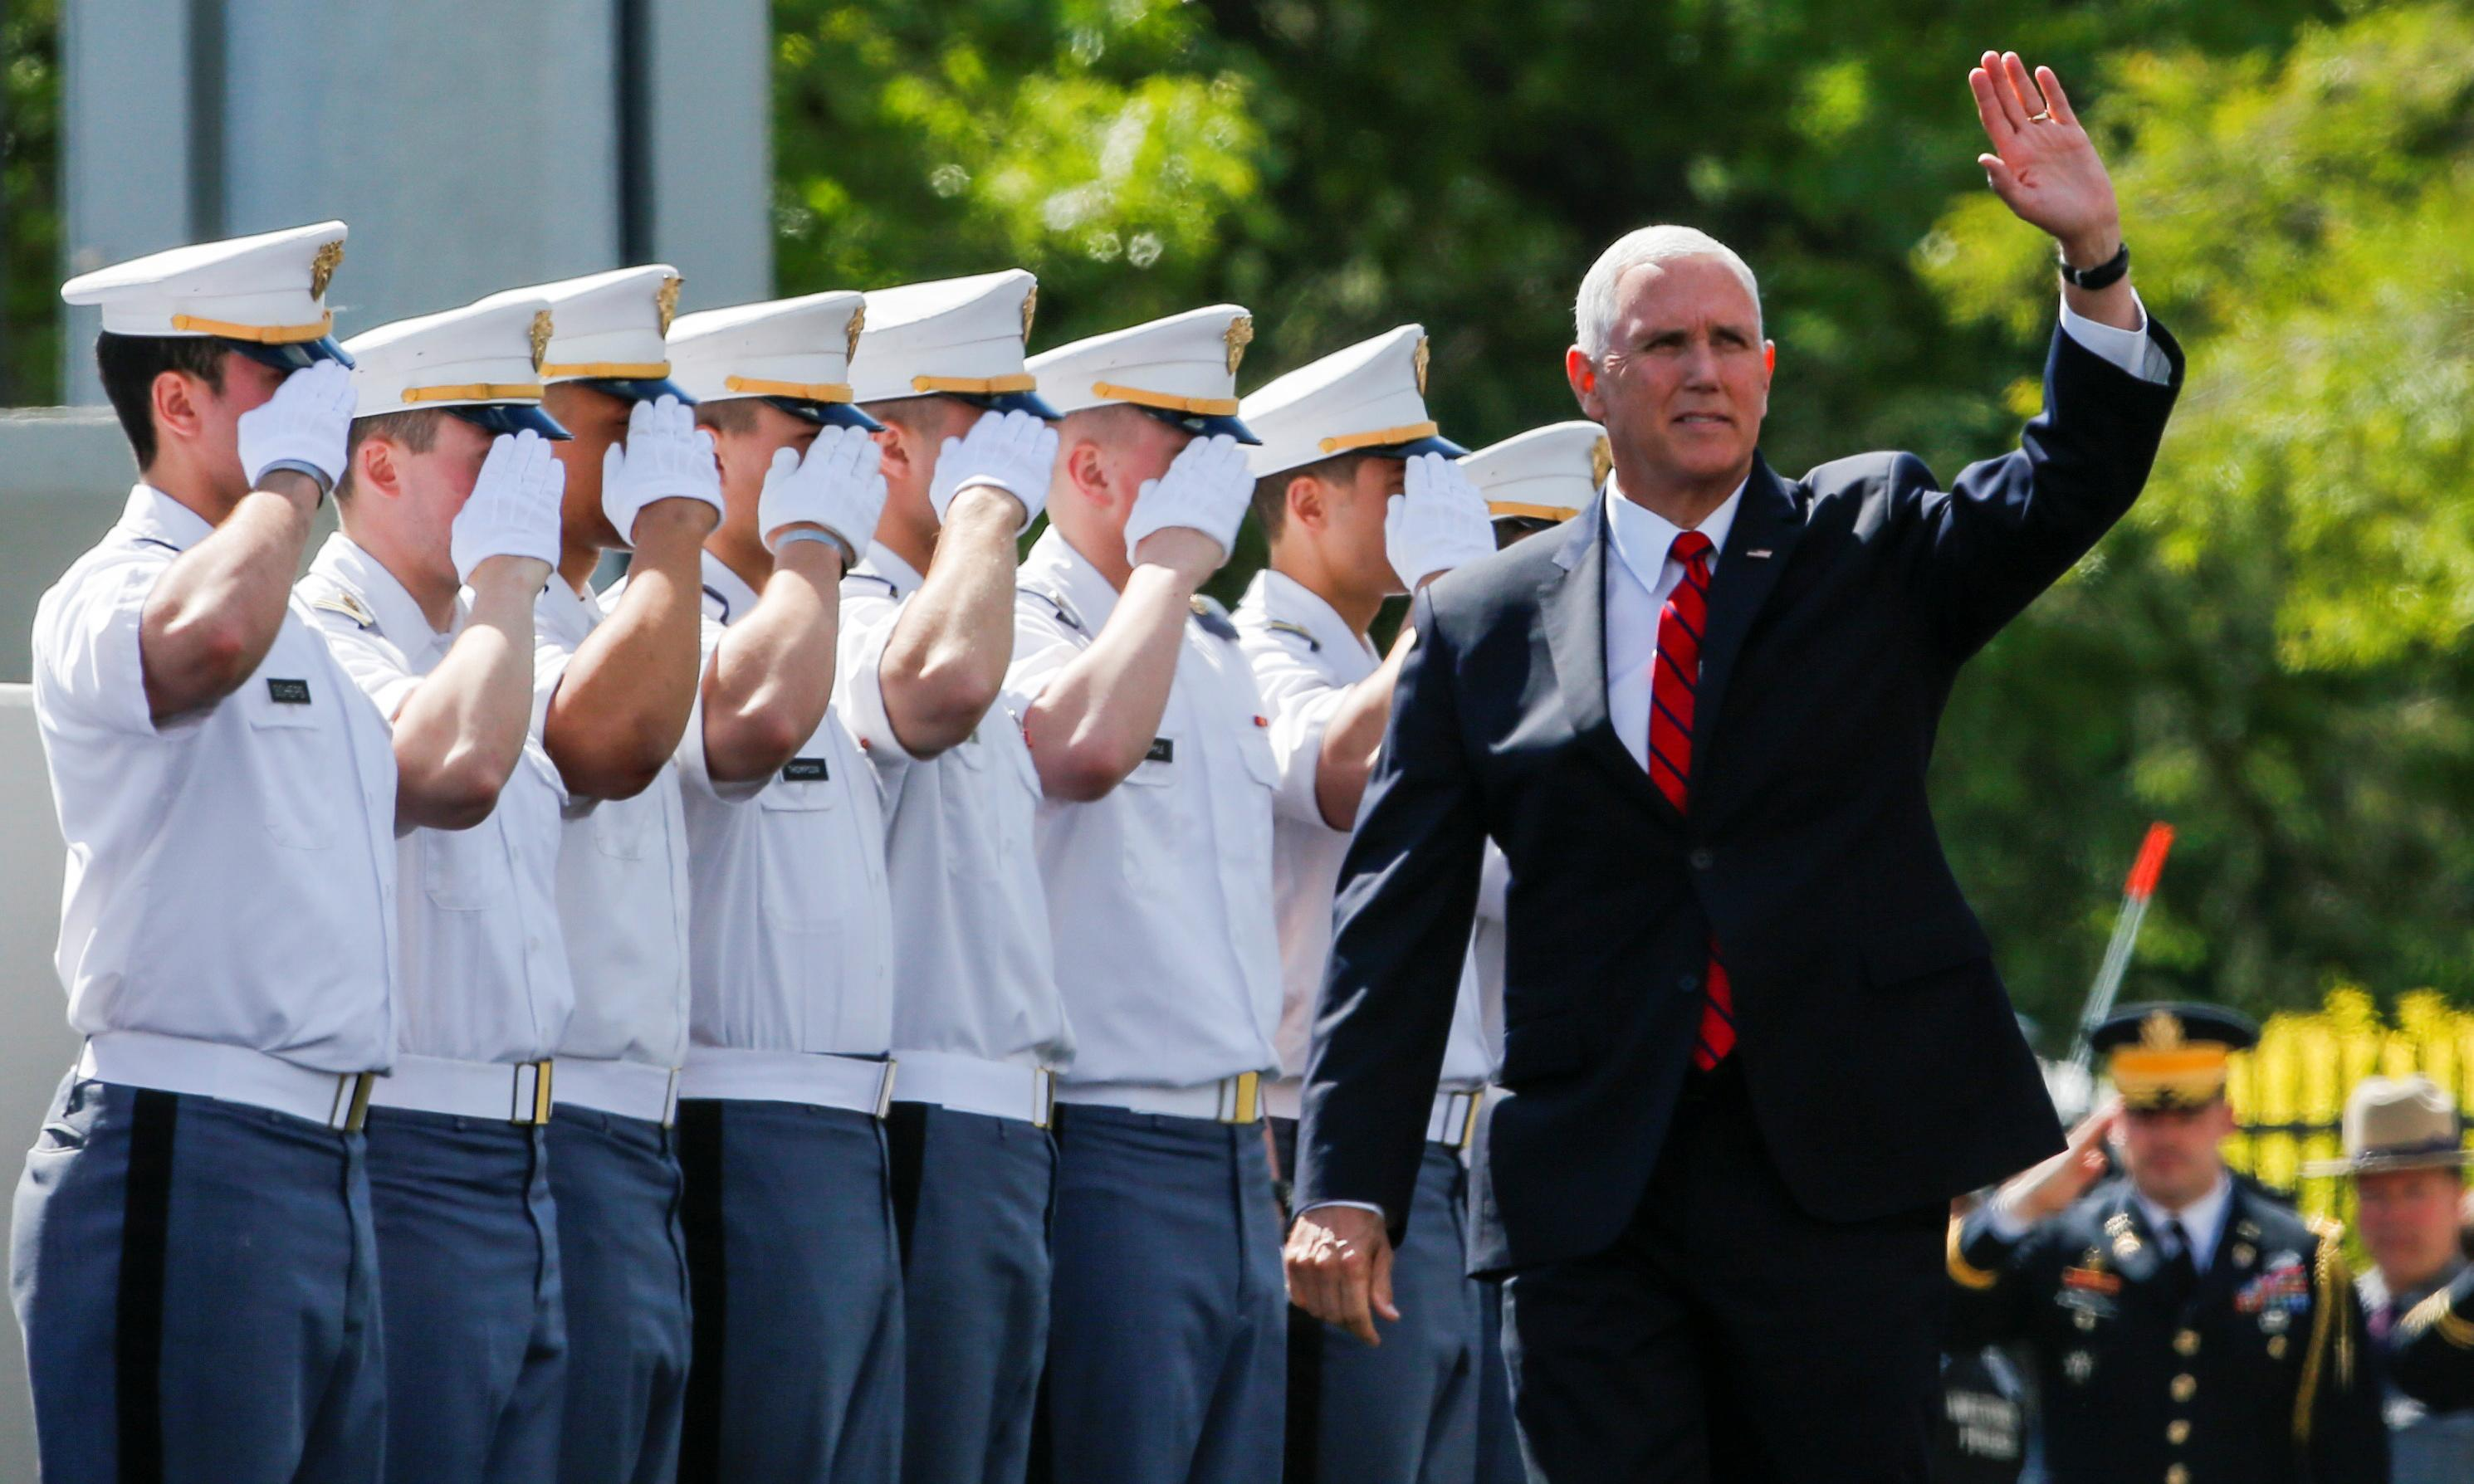 Mike Pence tells US military graduates: you should expect to see combat